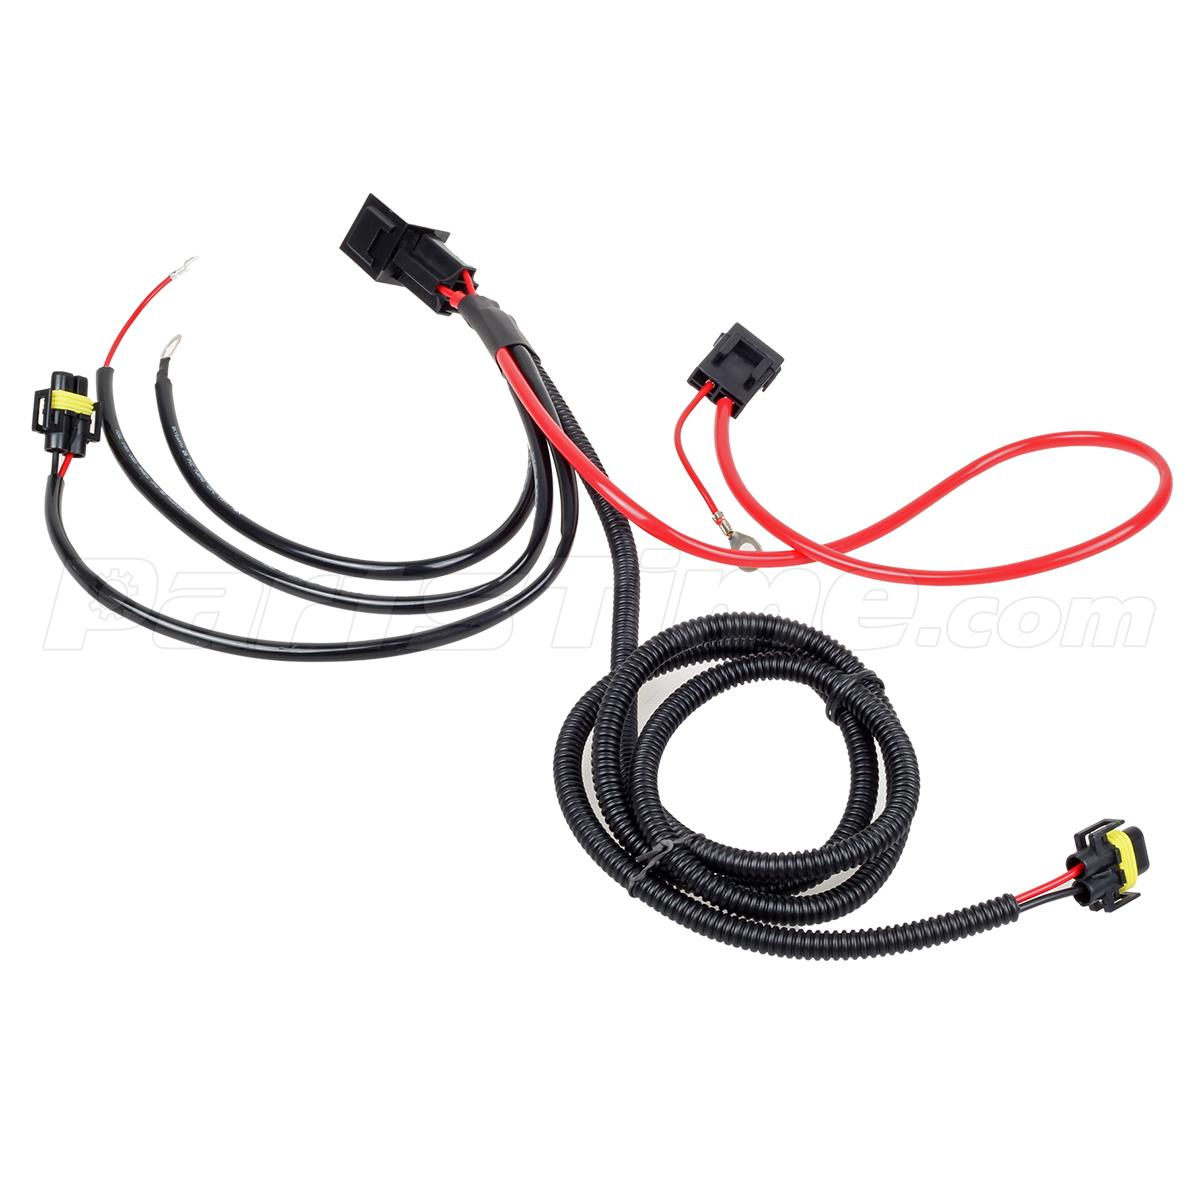 Hid Relay Harnesses Are Used To Protect Your